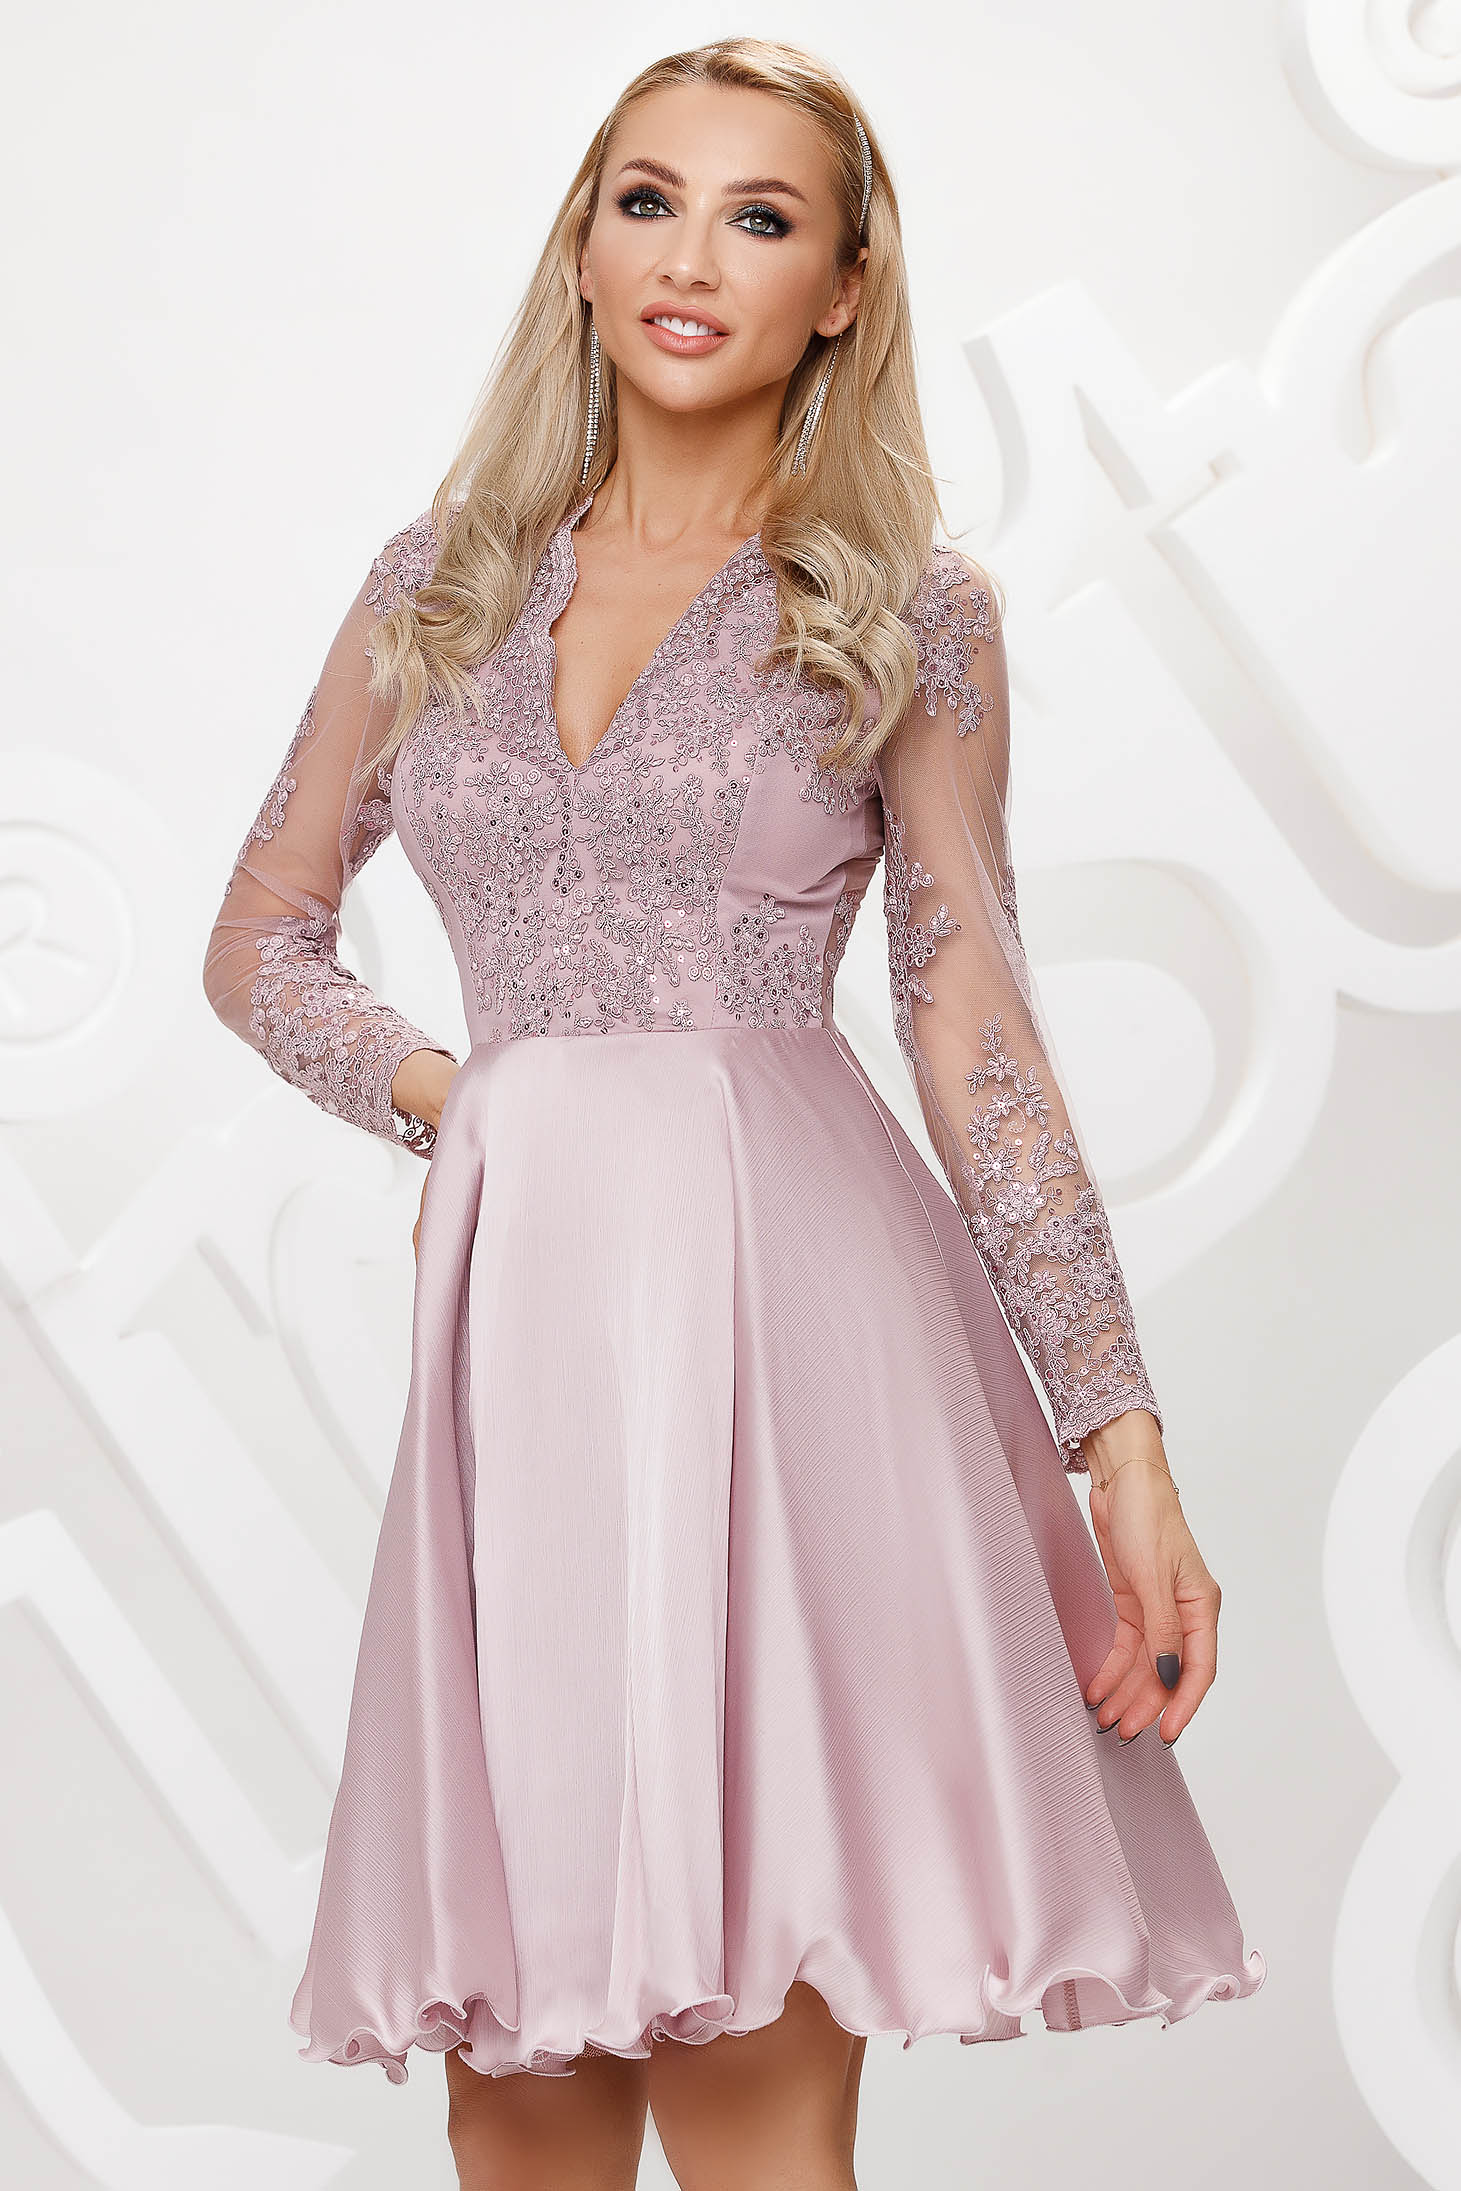 Lightpink dress from tulle cloche occasional lace and sequins details